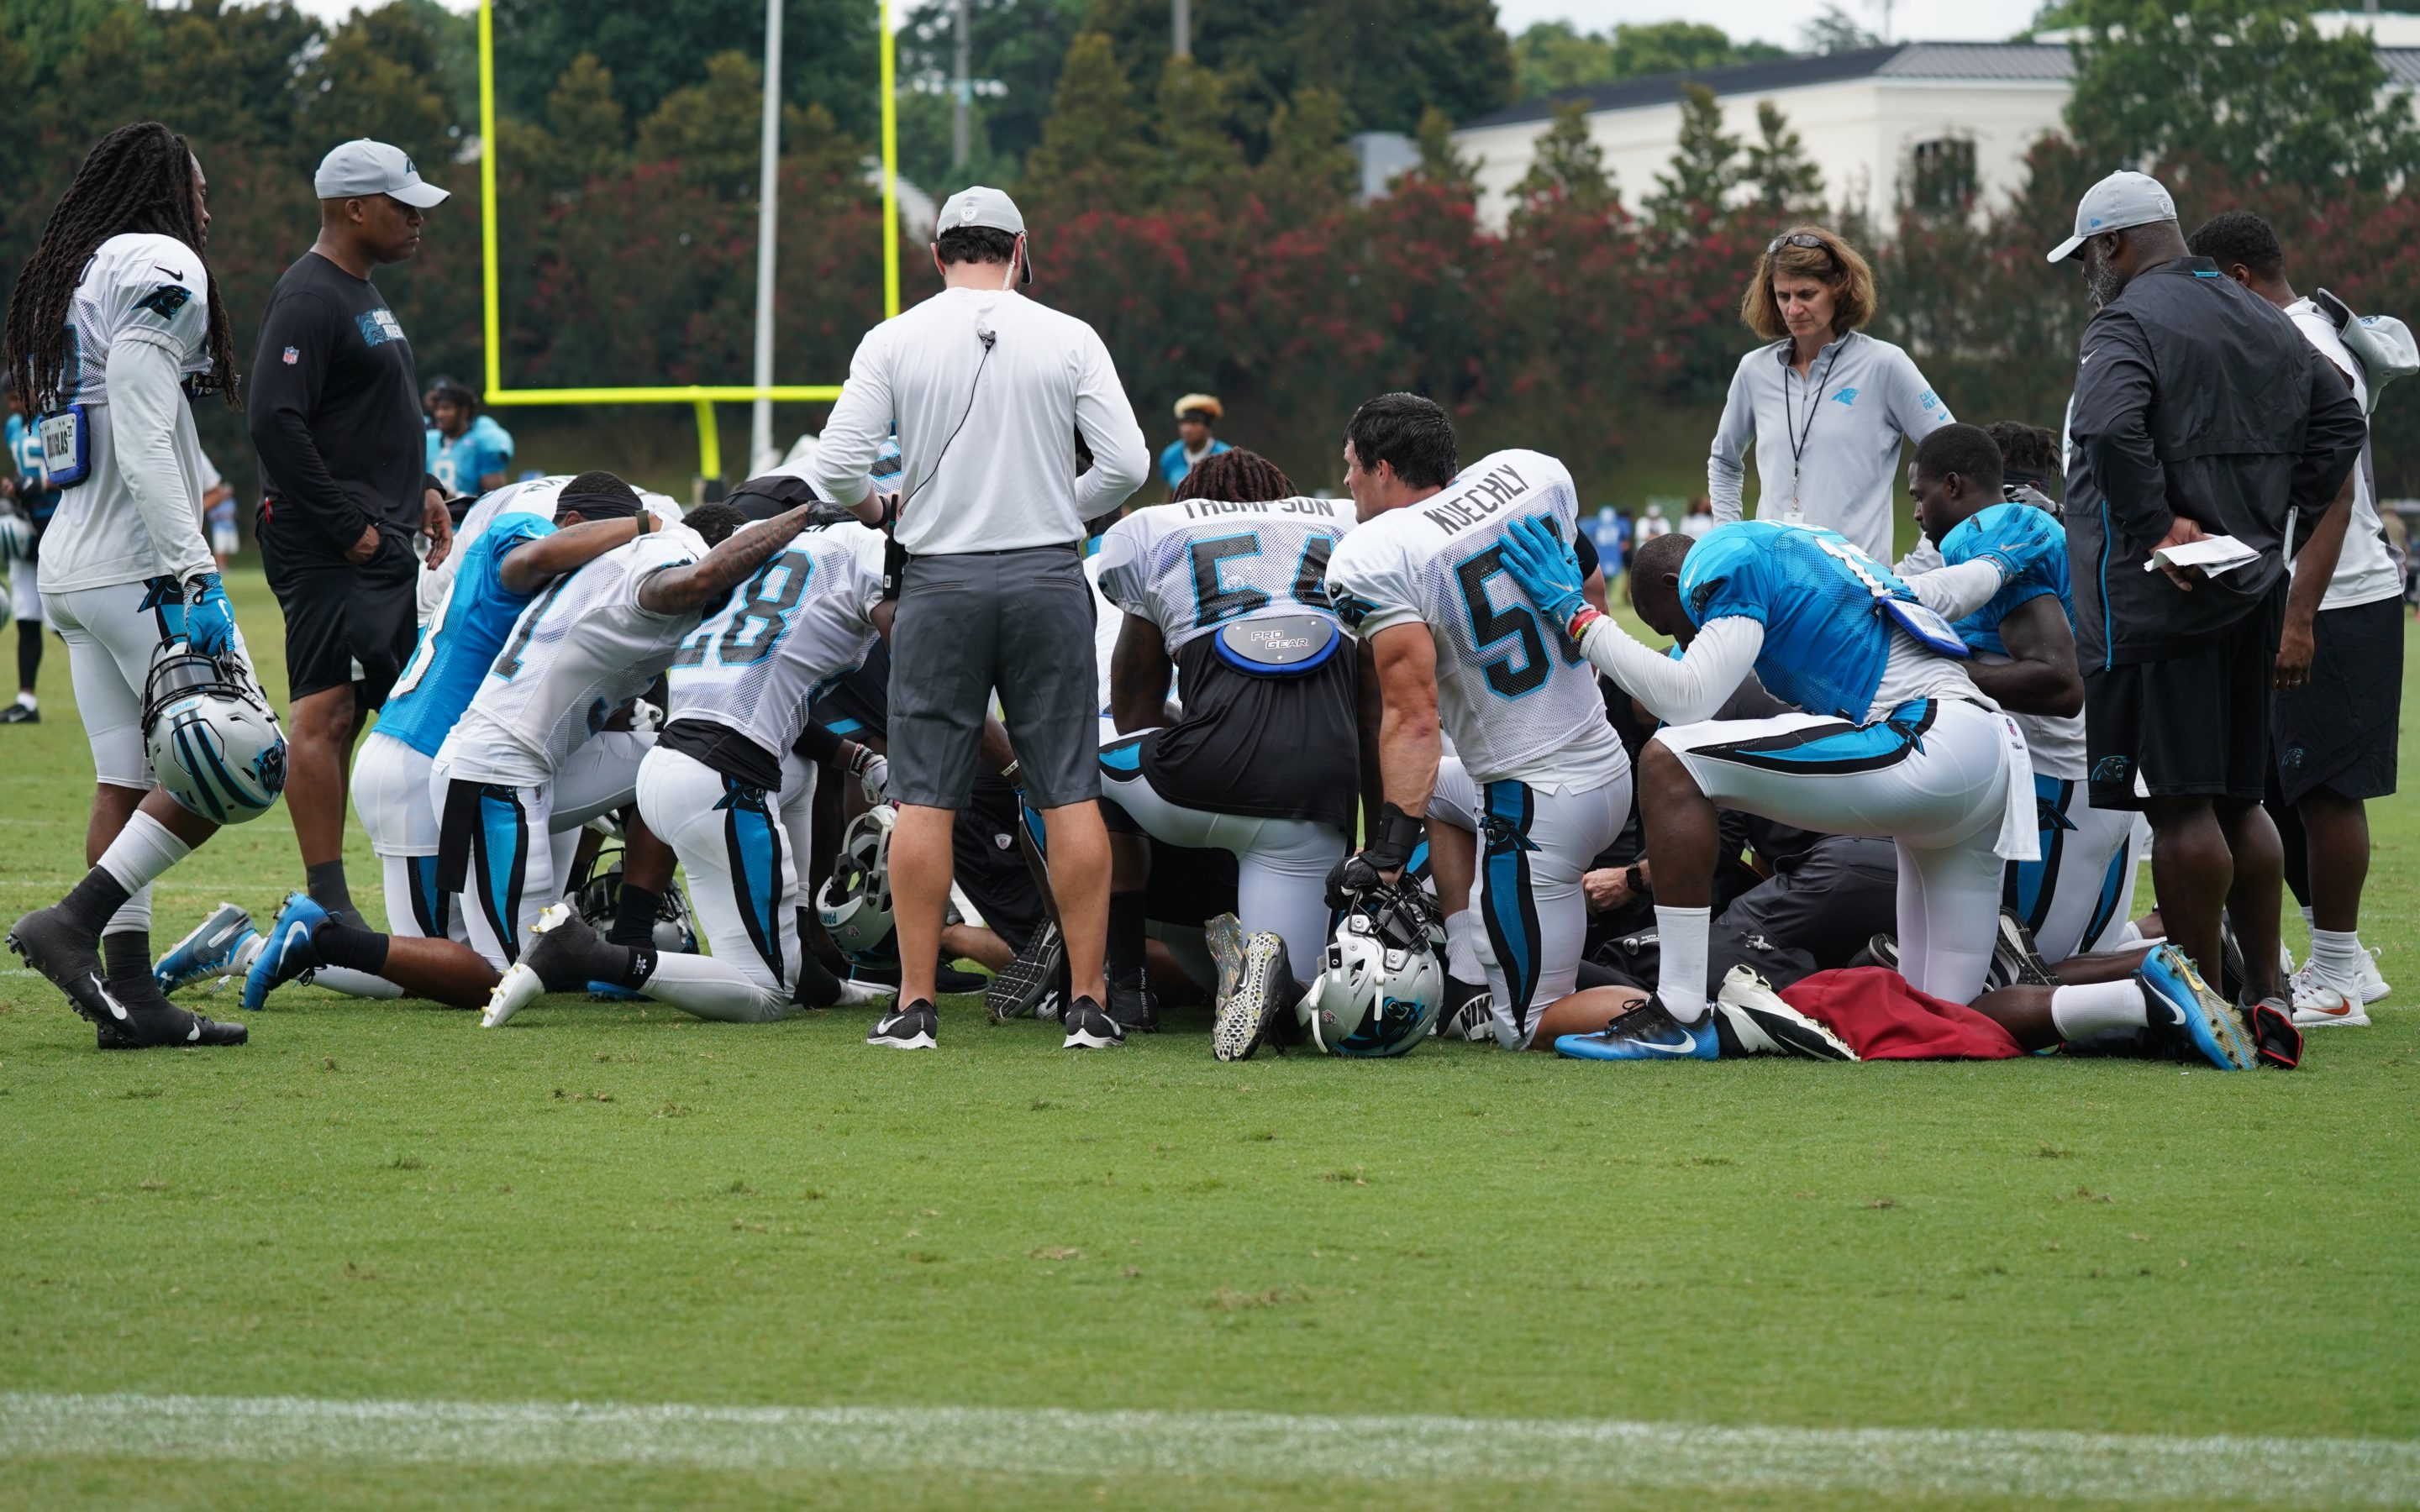 Monday's Panthers Training Camp Session Ends With Another Player Carted Off